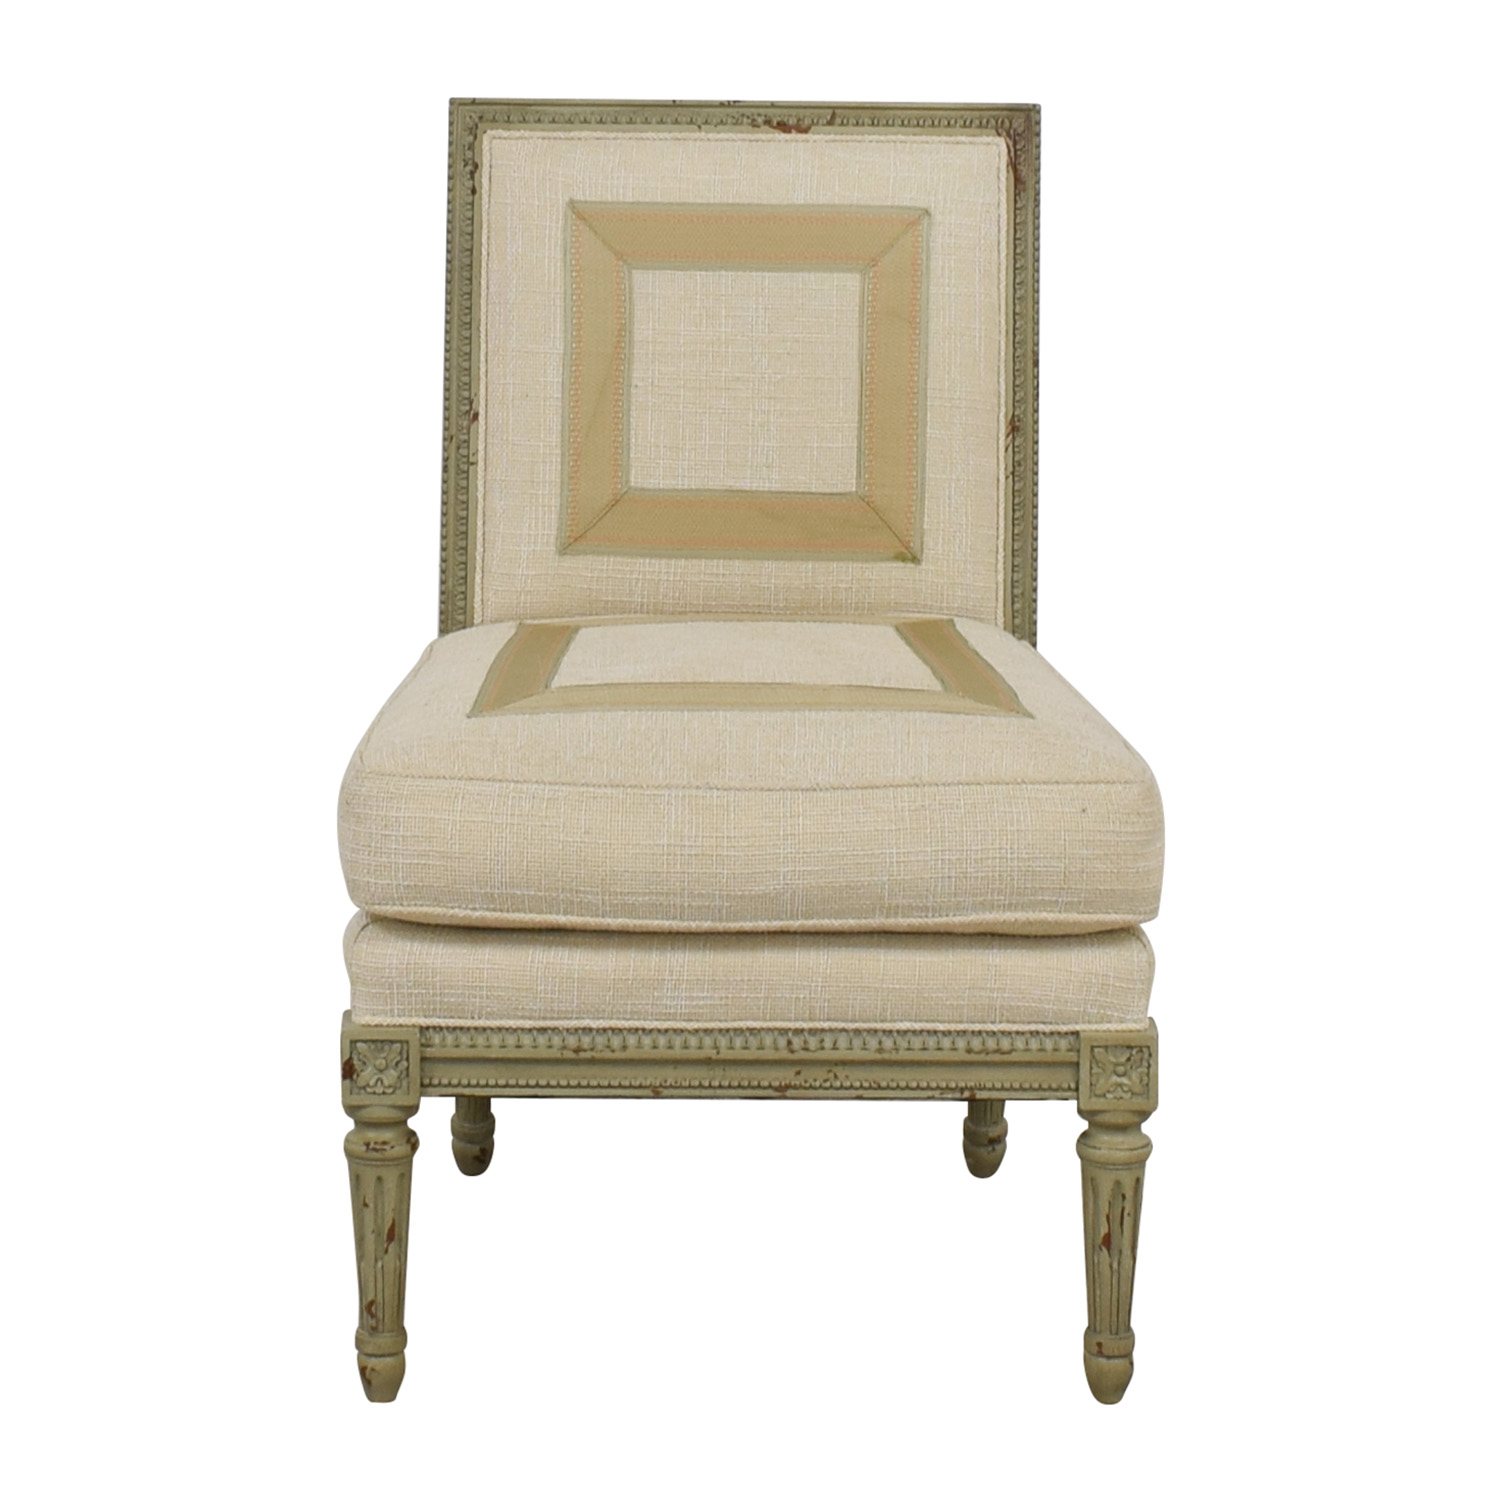 Hickory Chair Hickory Chair Custom Linen Upholstered Chair dimensions